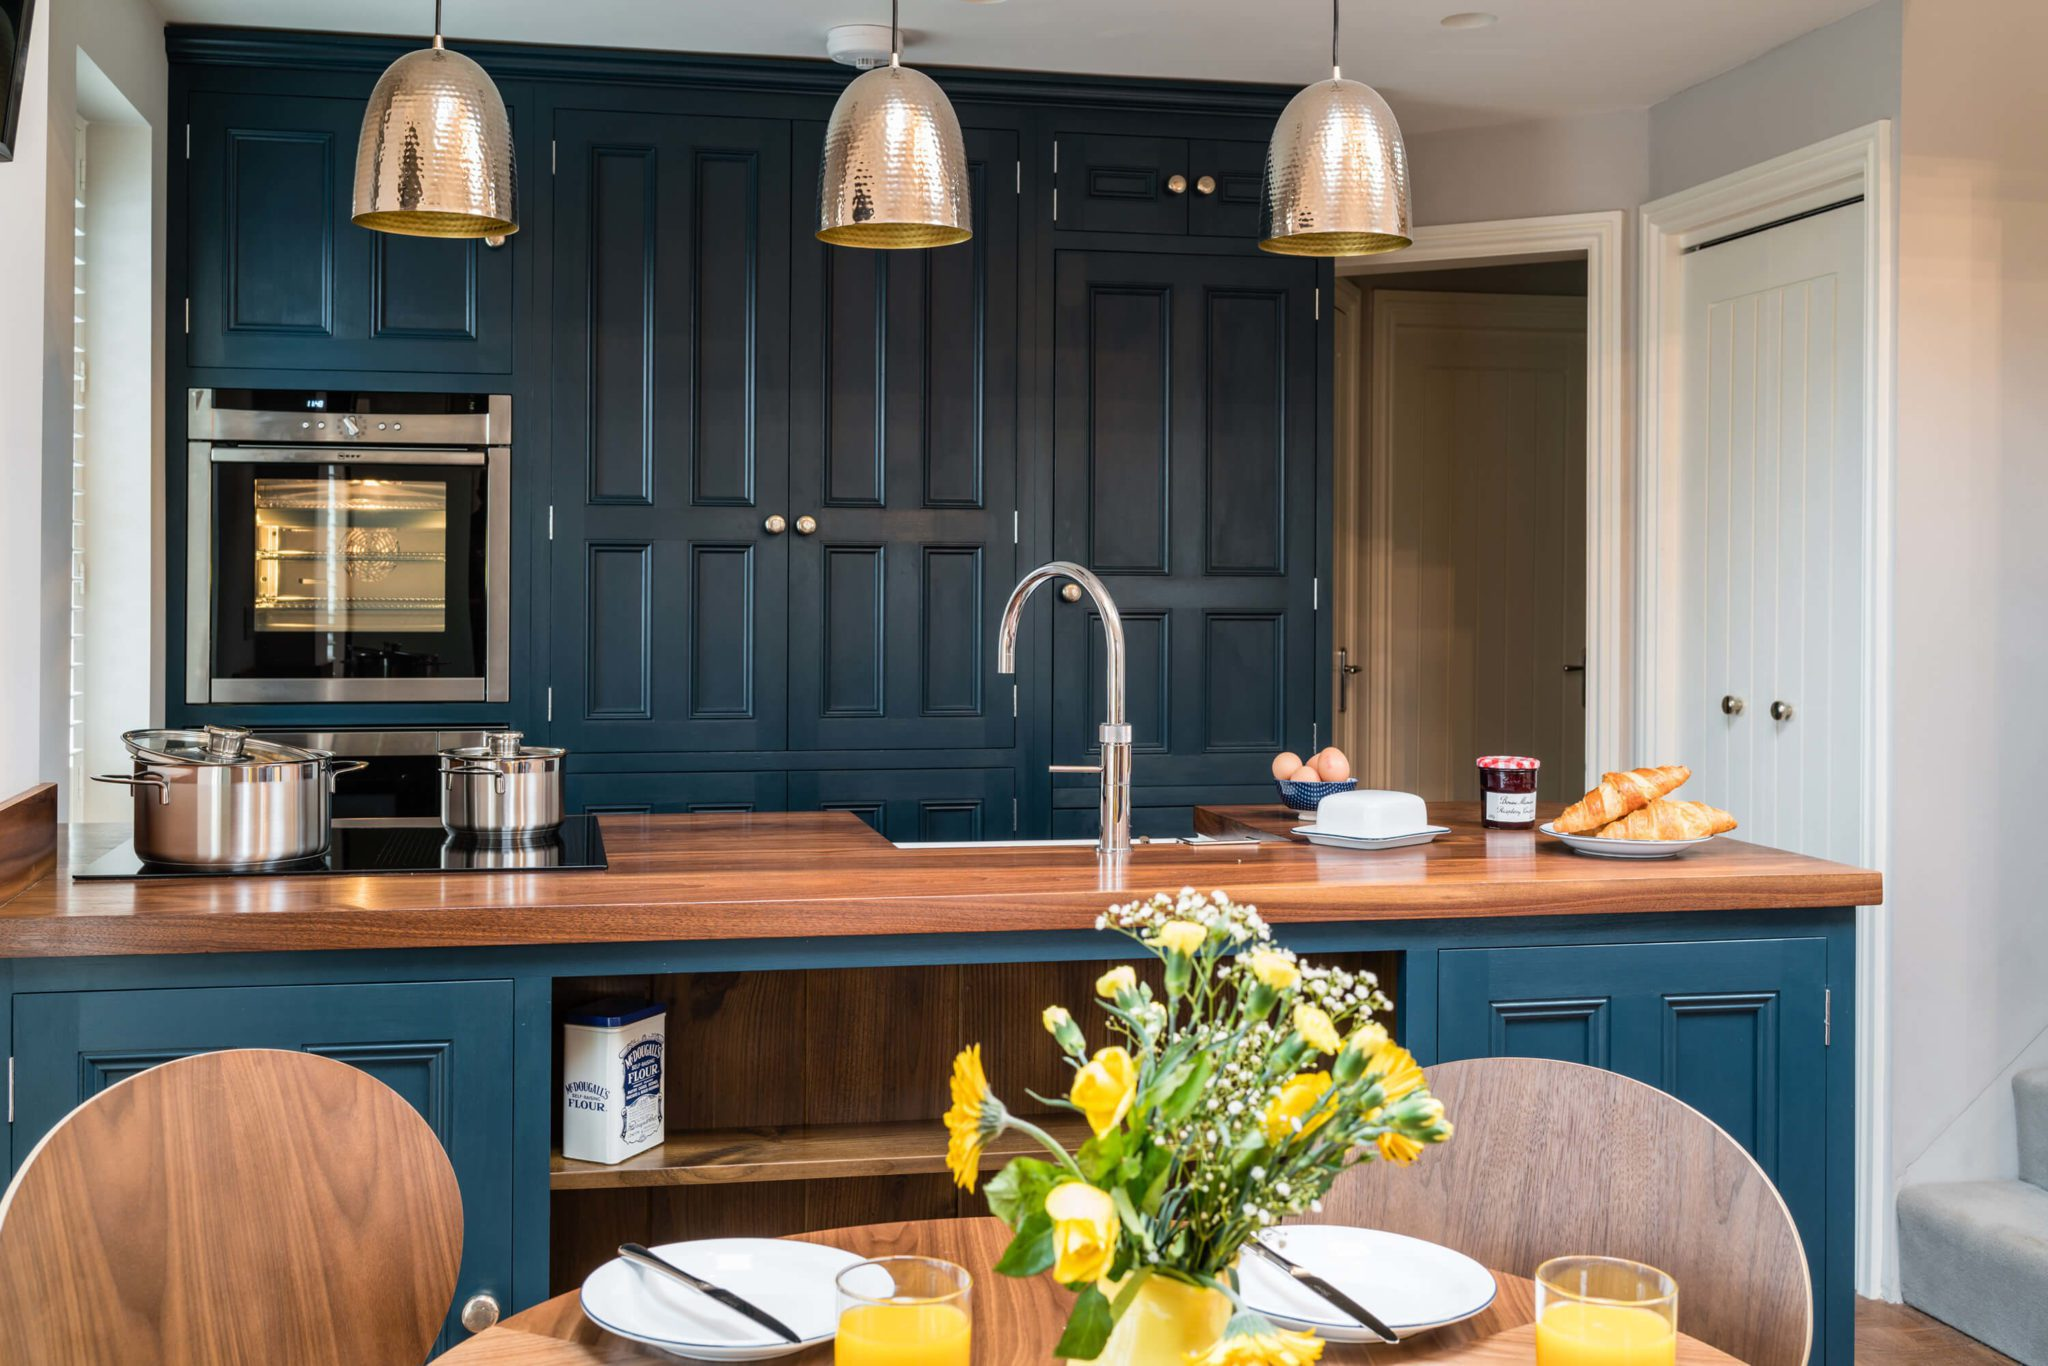 Kitchen Blue 7 - Hill Farm Furniture